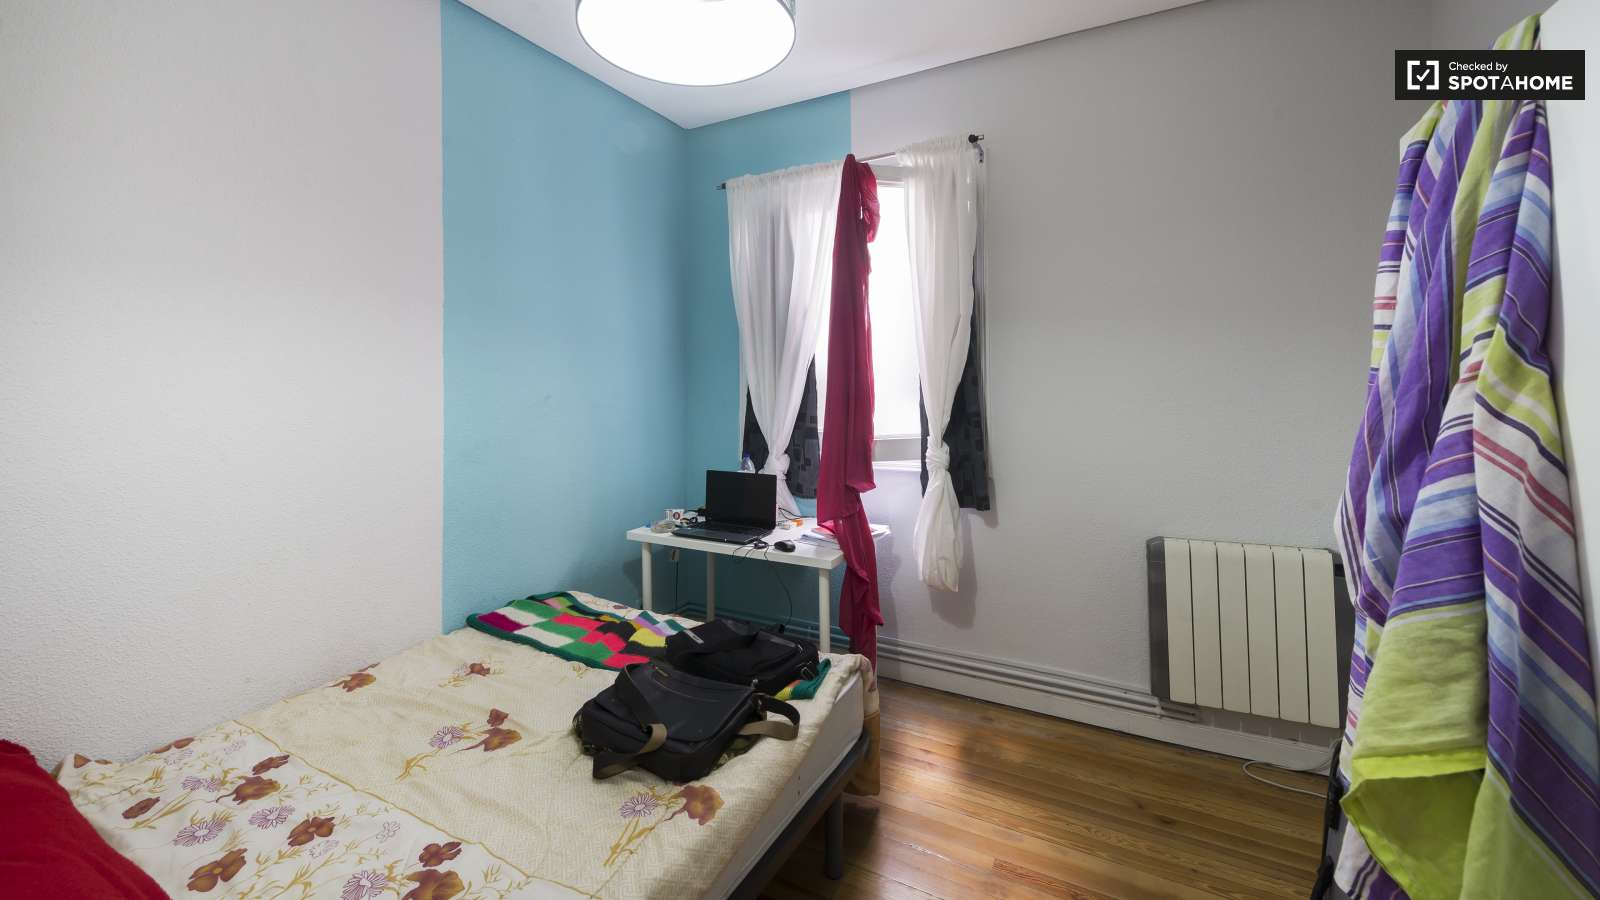 Nicely Decorated Bedrooms Rooms With Utilities Included In Alonso Martinez Madrid Spotahome